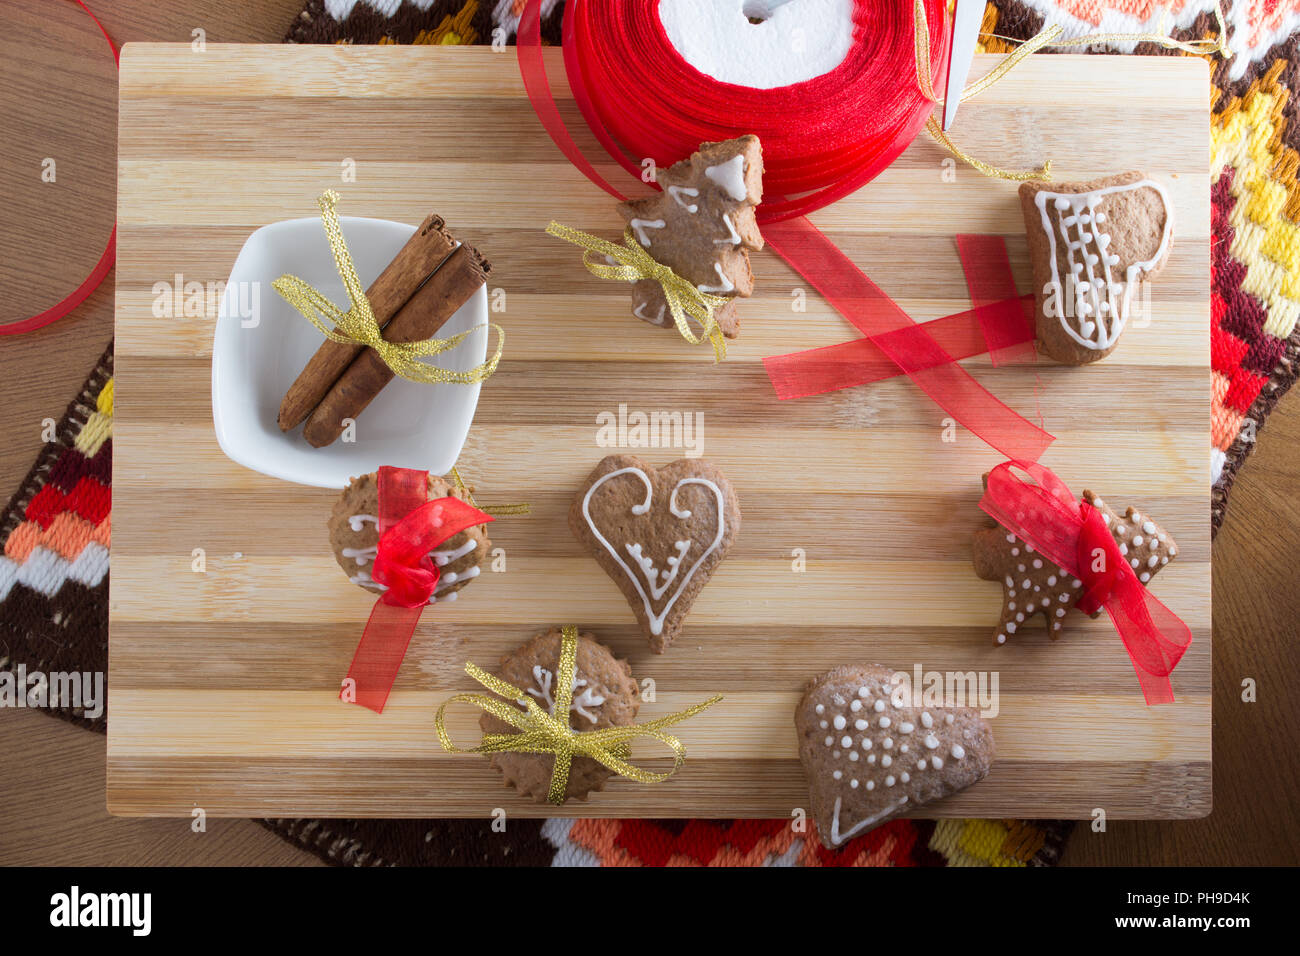 Decorating gingerbread cookies with colourfull ribbons - Stock Image